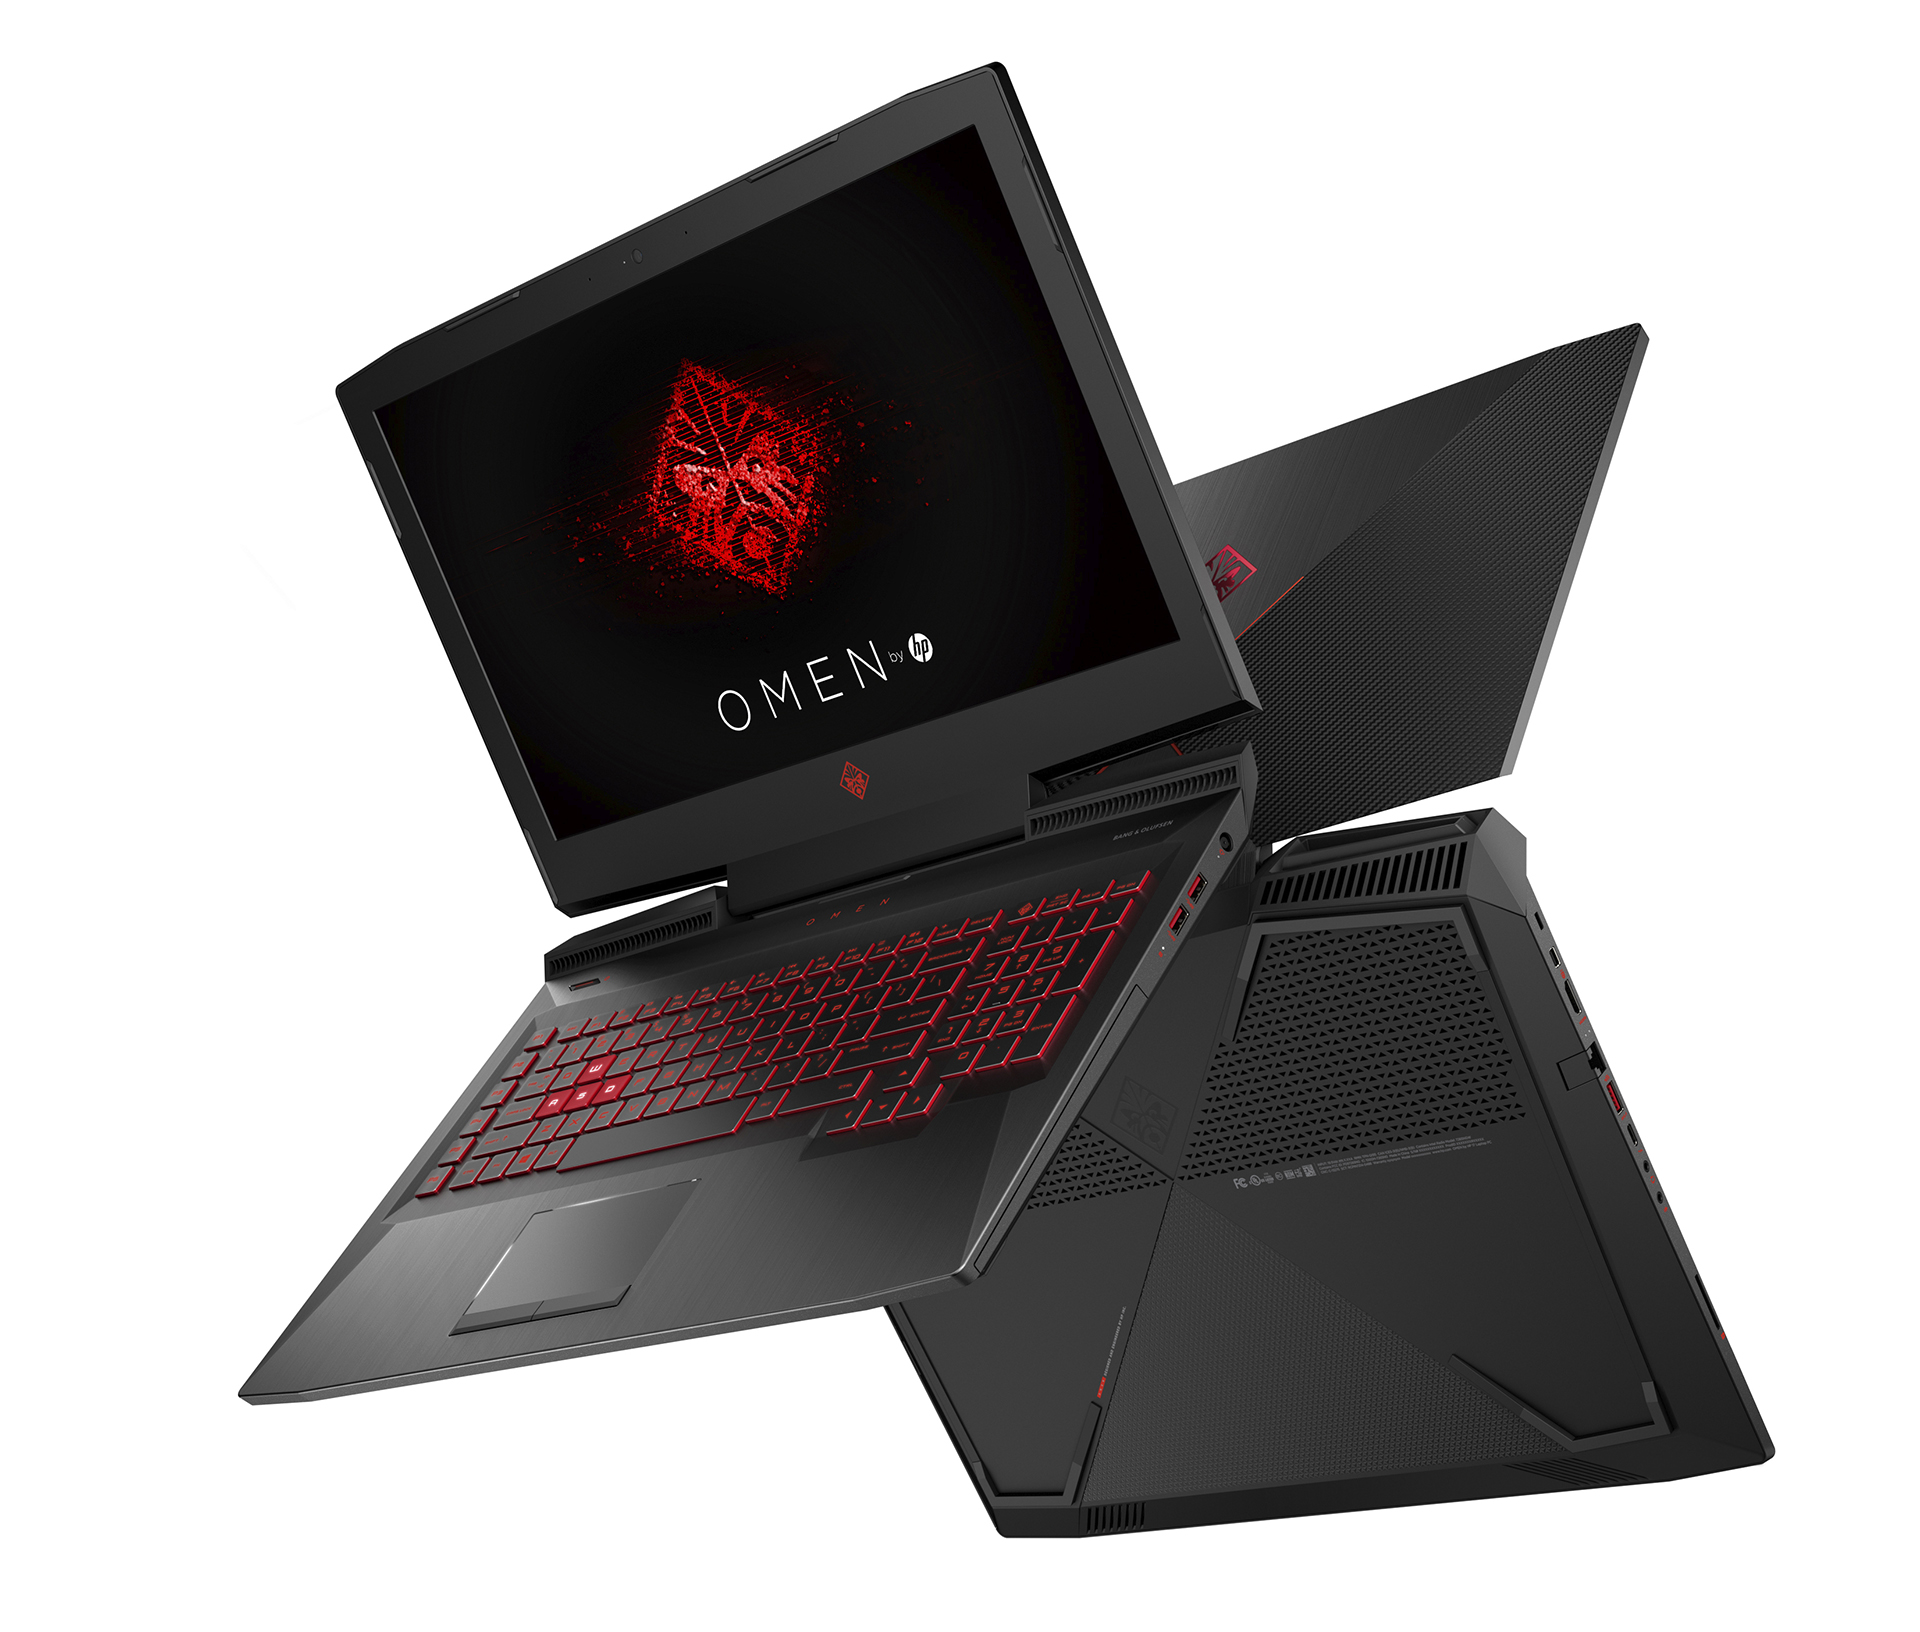 Image result for logo hp omen 2017